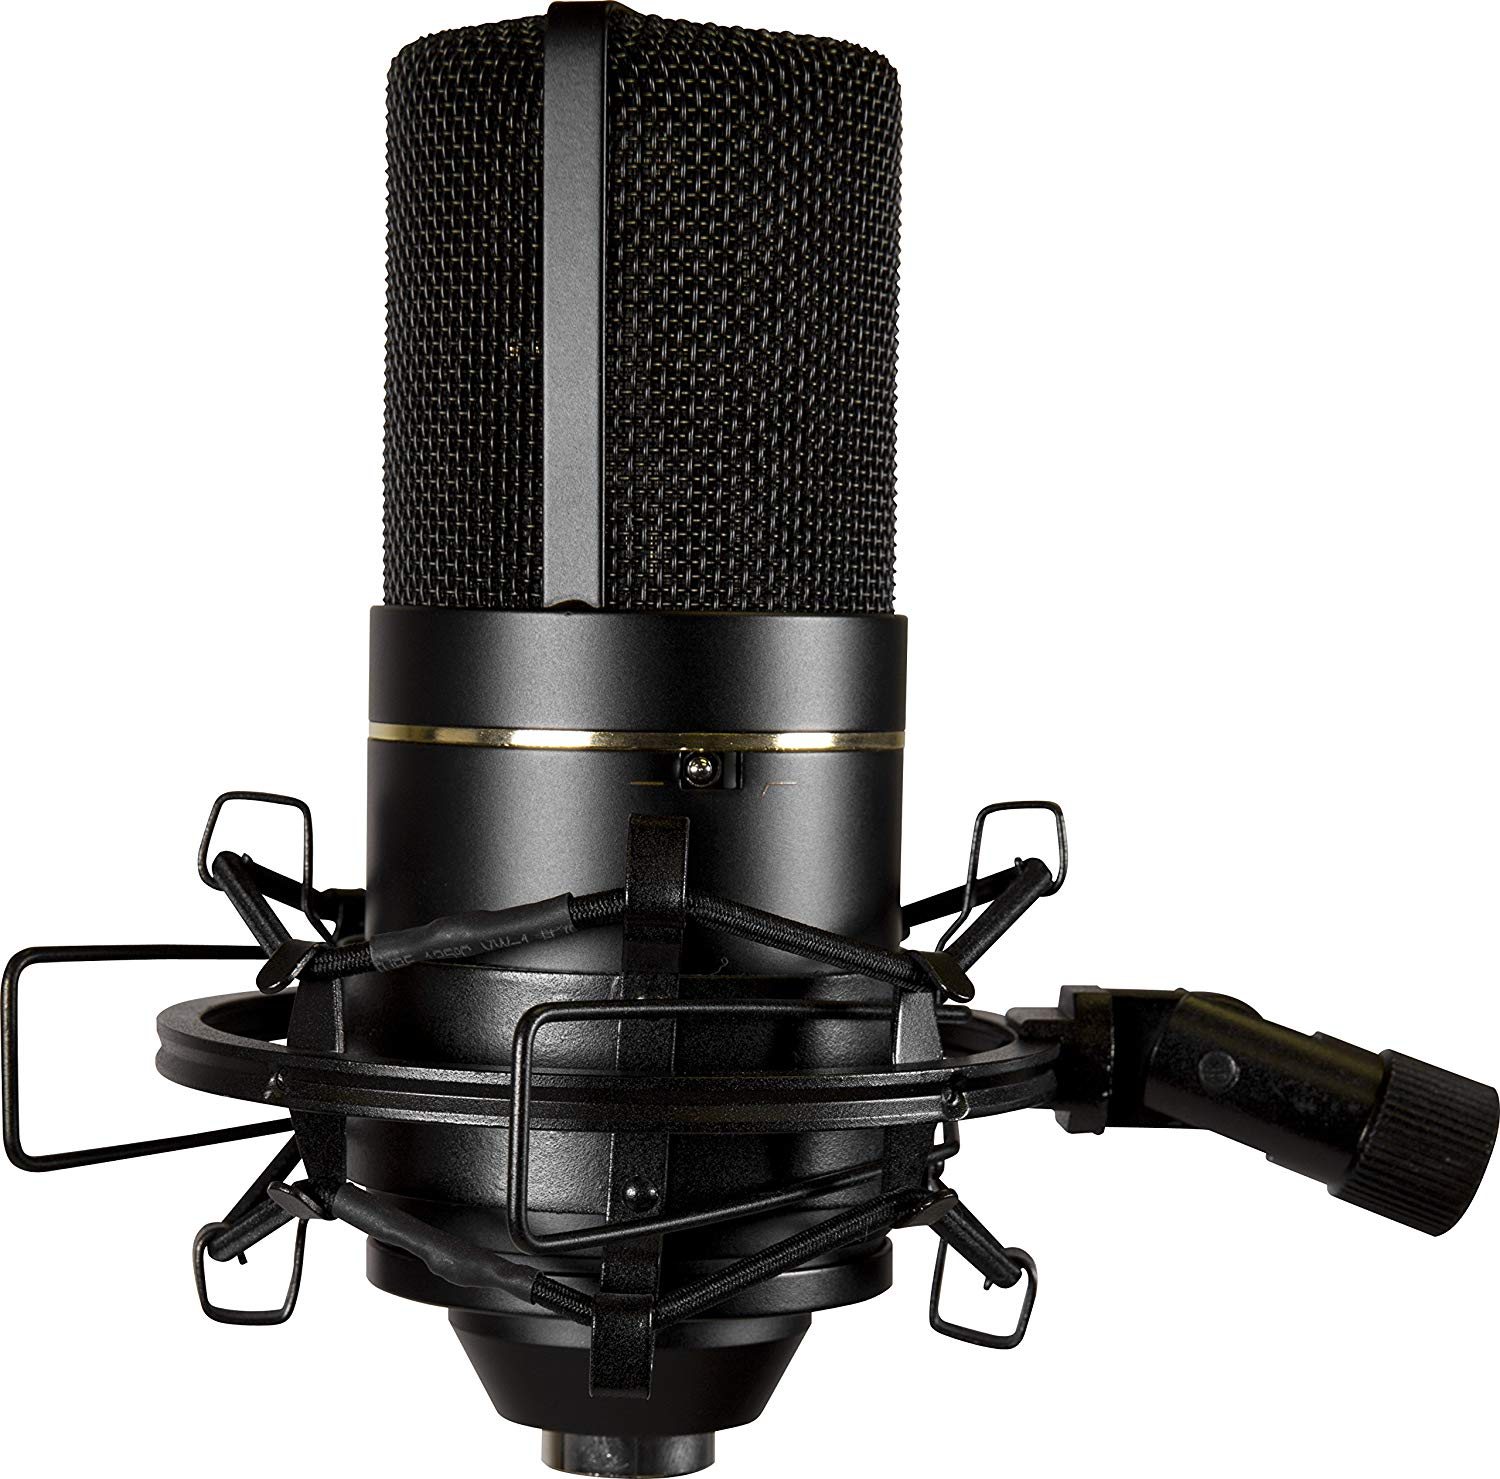 Side View of The MXL 770 Cardioid Condenser Mic